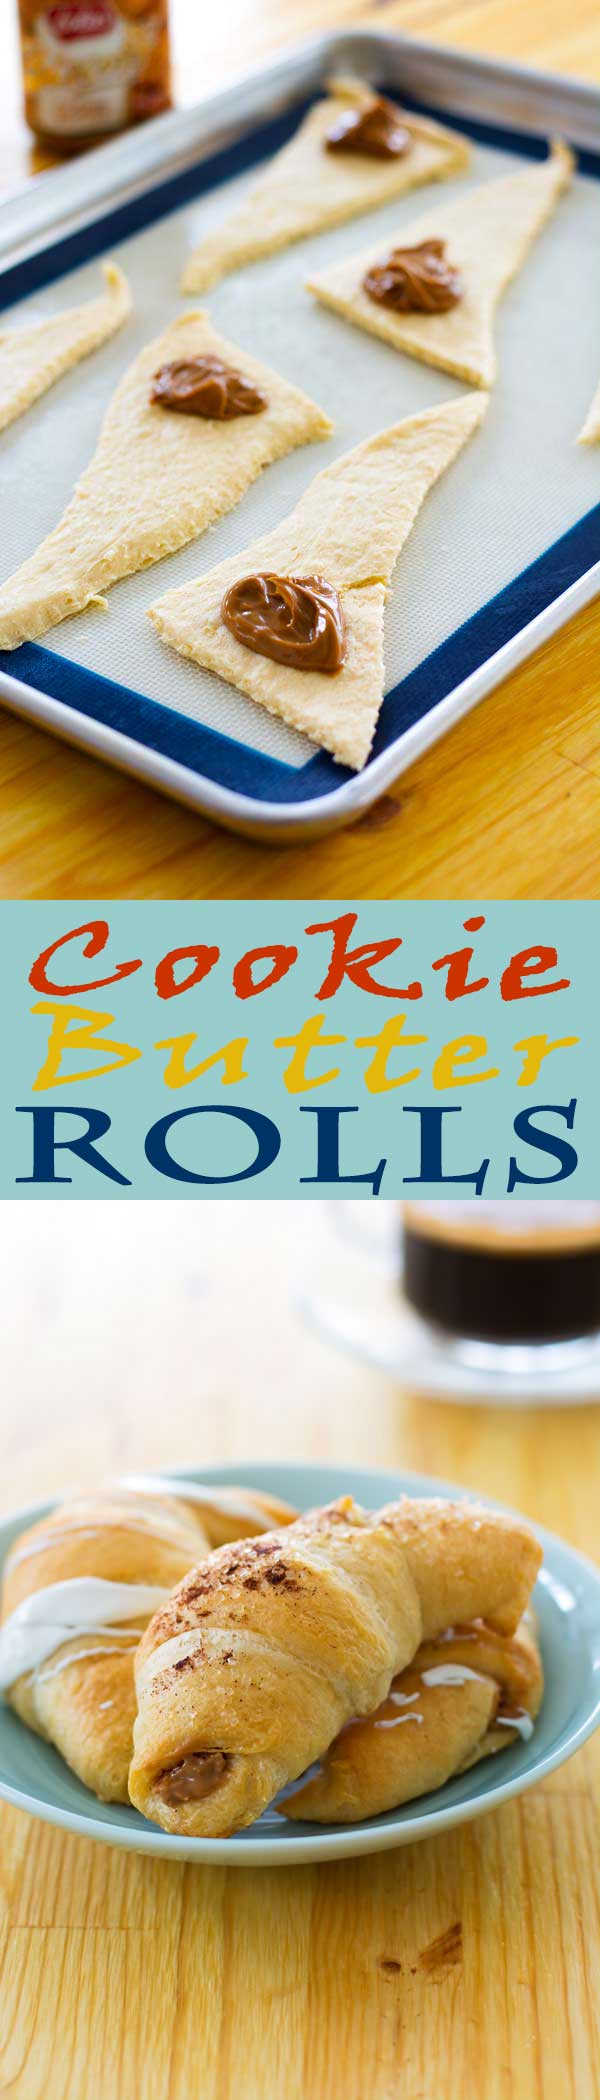 These cookie butter rolls are made with only two ingredients – crescent rolls and Biscoff cookie butter spread!